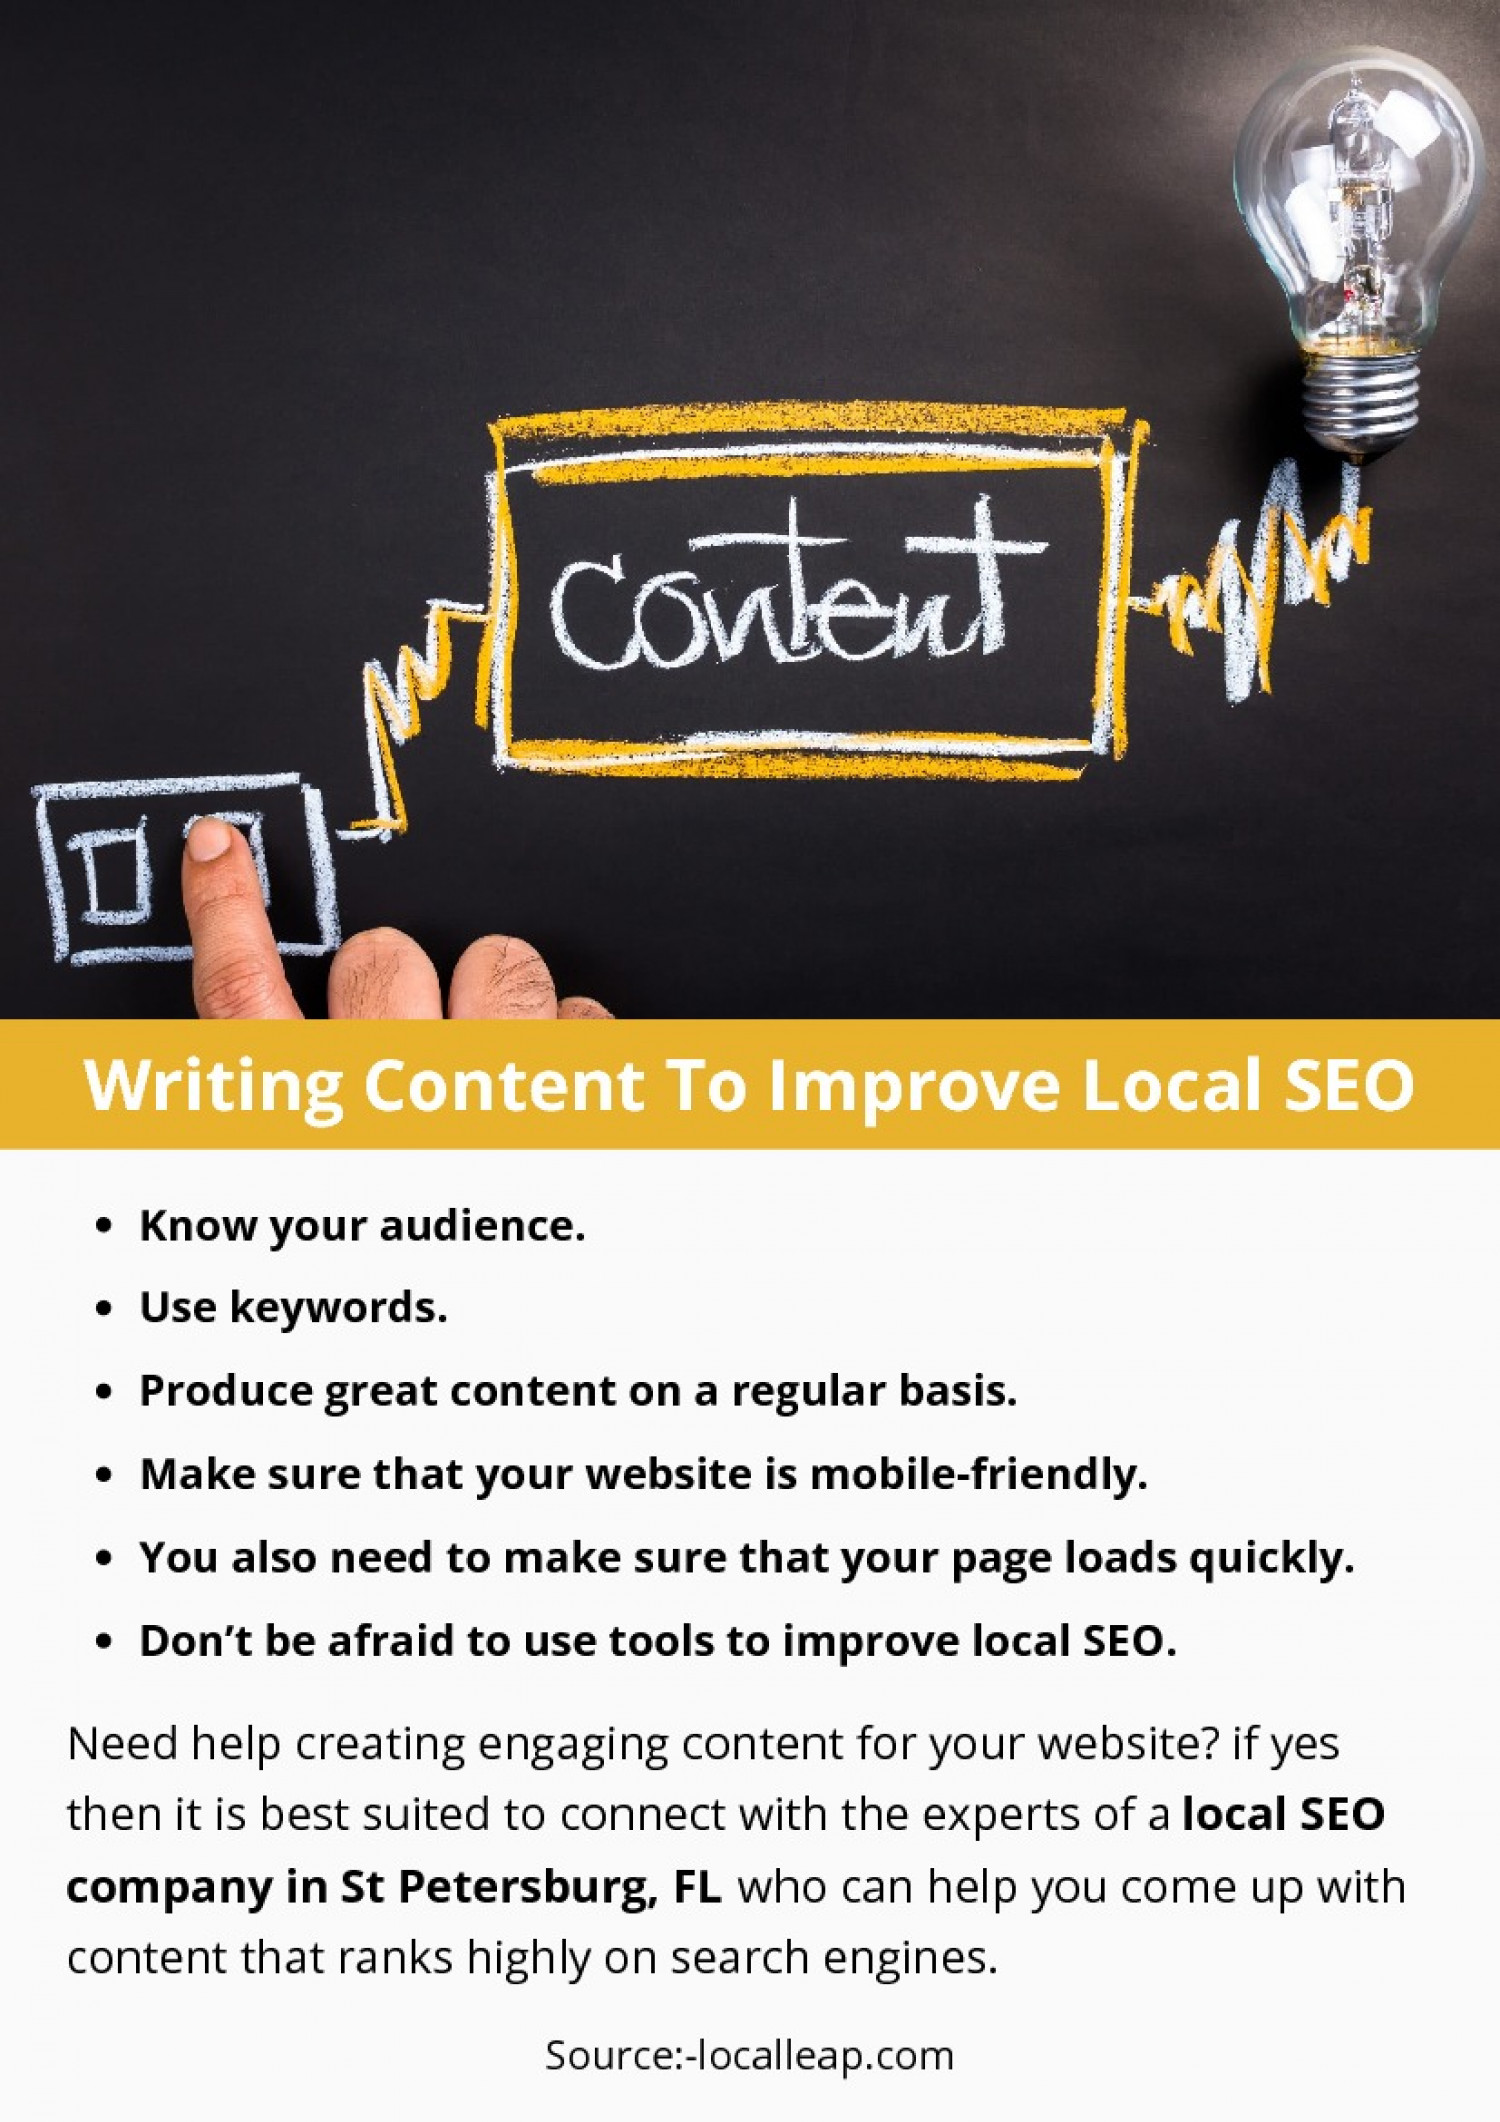 Writing Content To Improve Local SEO Infographic